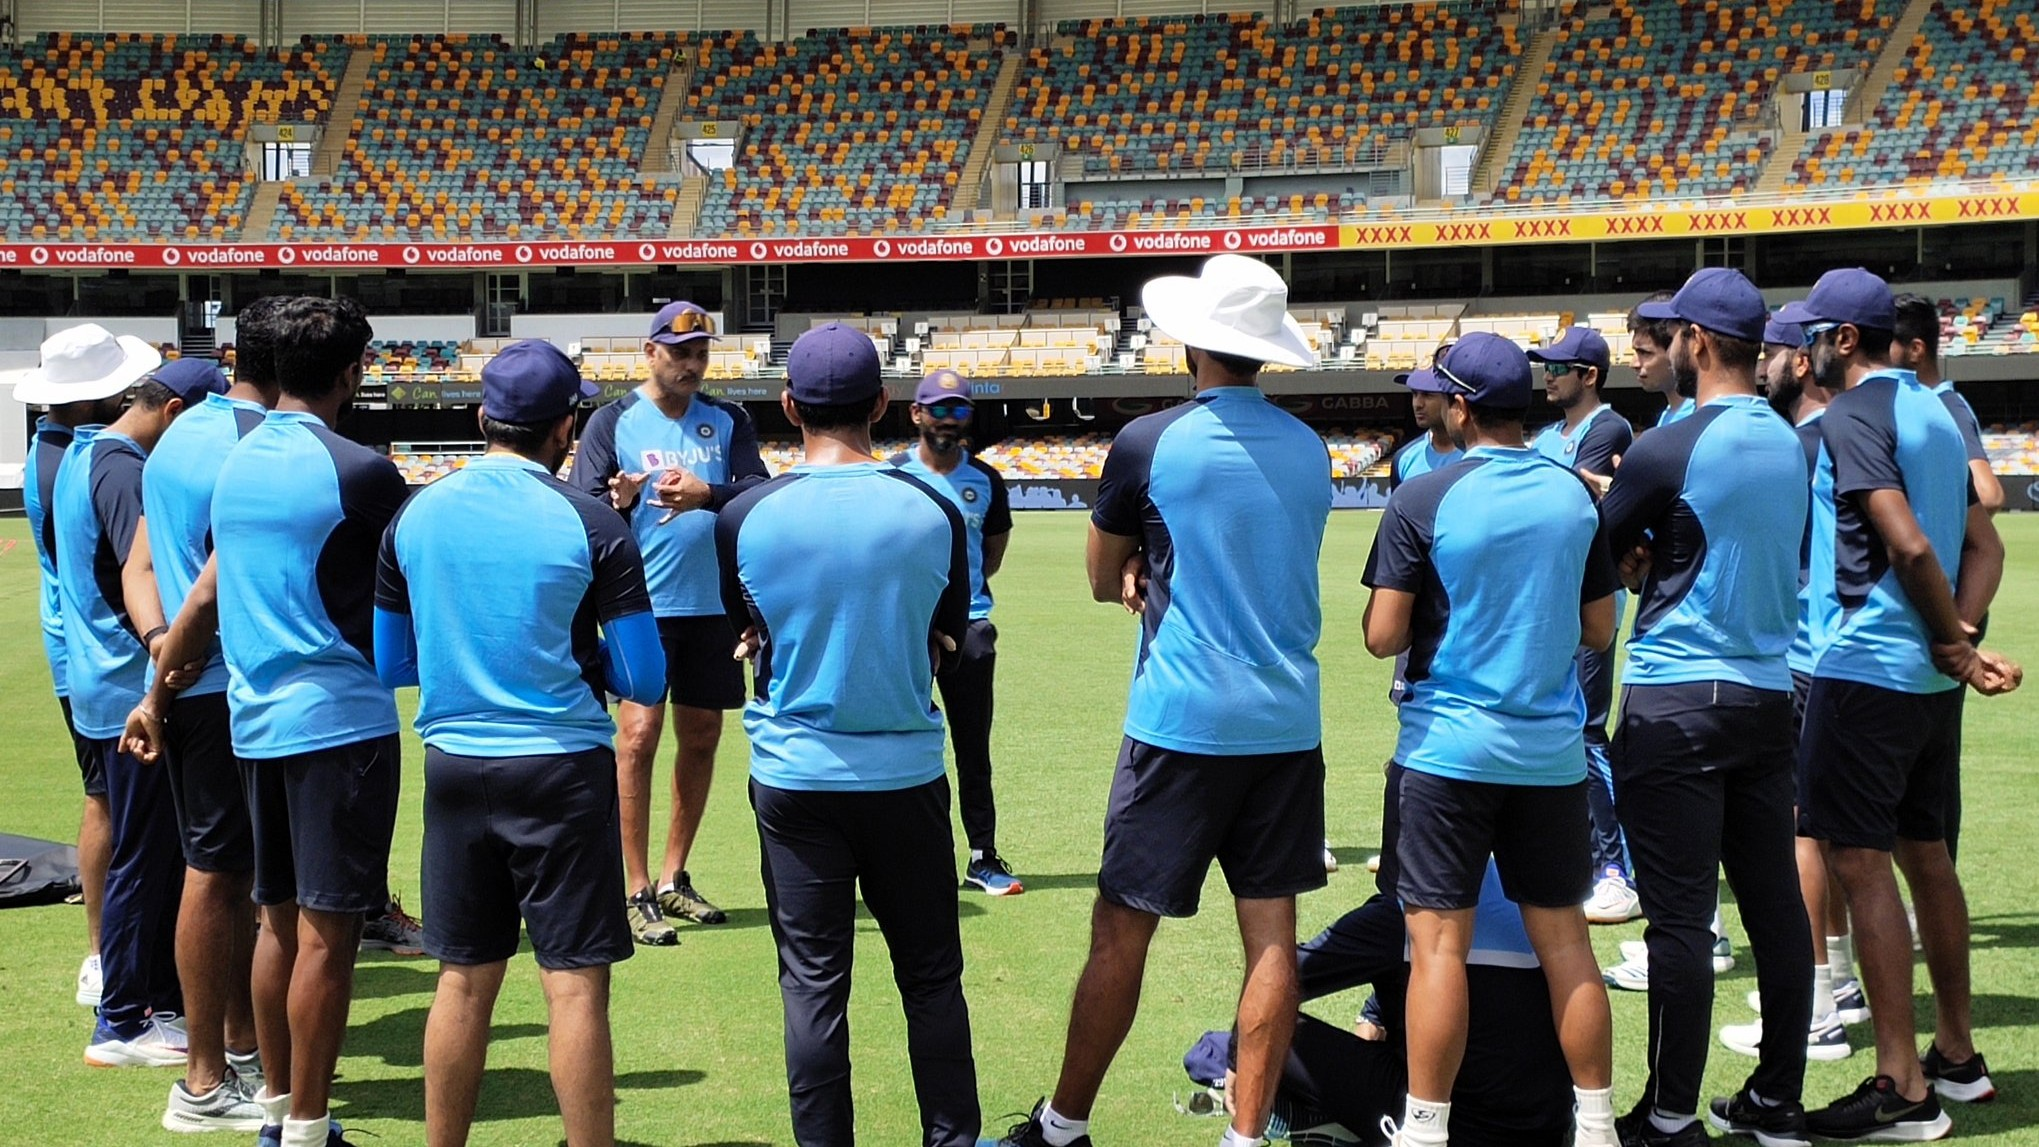 AUS v IND 2020-21: PICS- Team India trains at Gabba, Brisbane amidst injury concerns